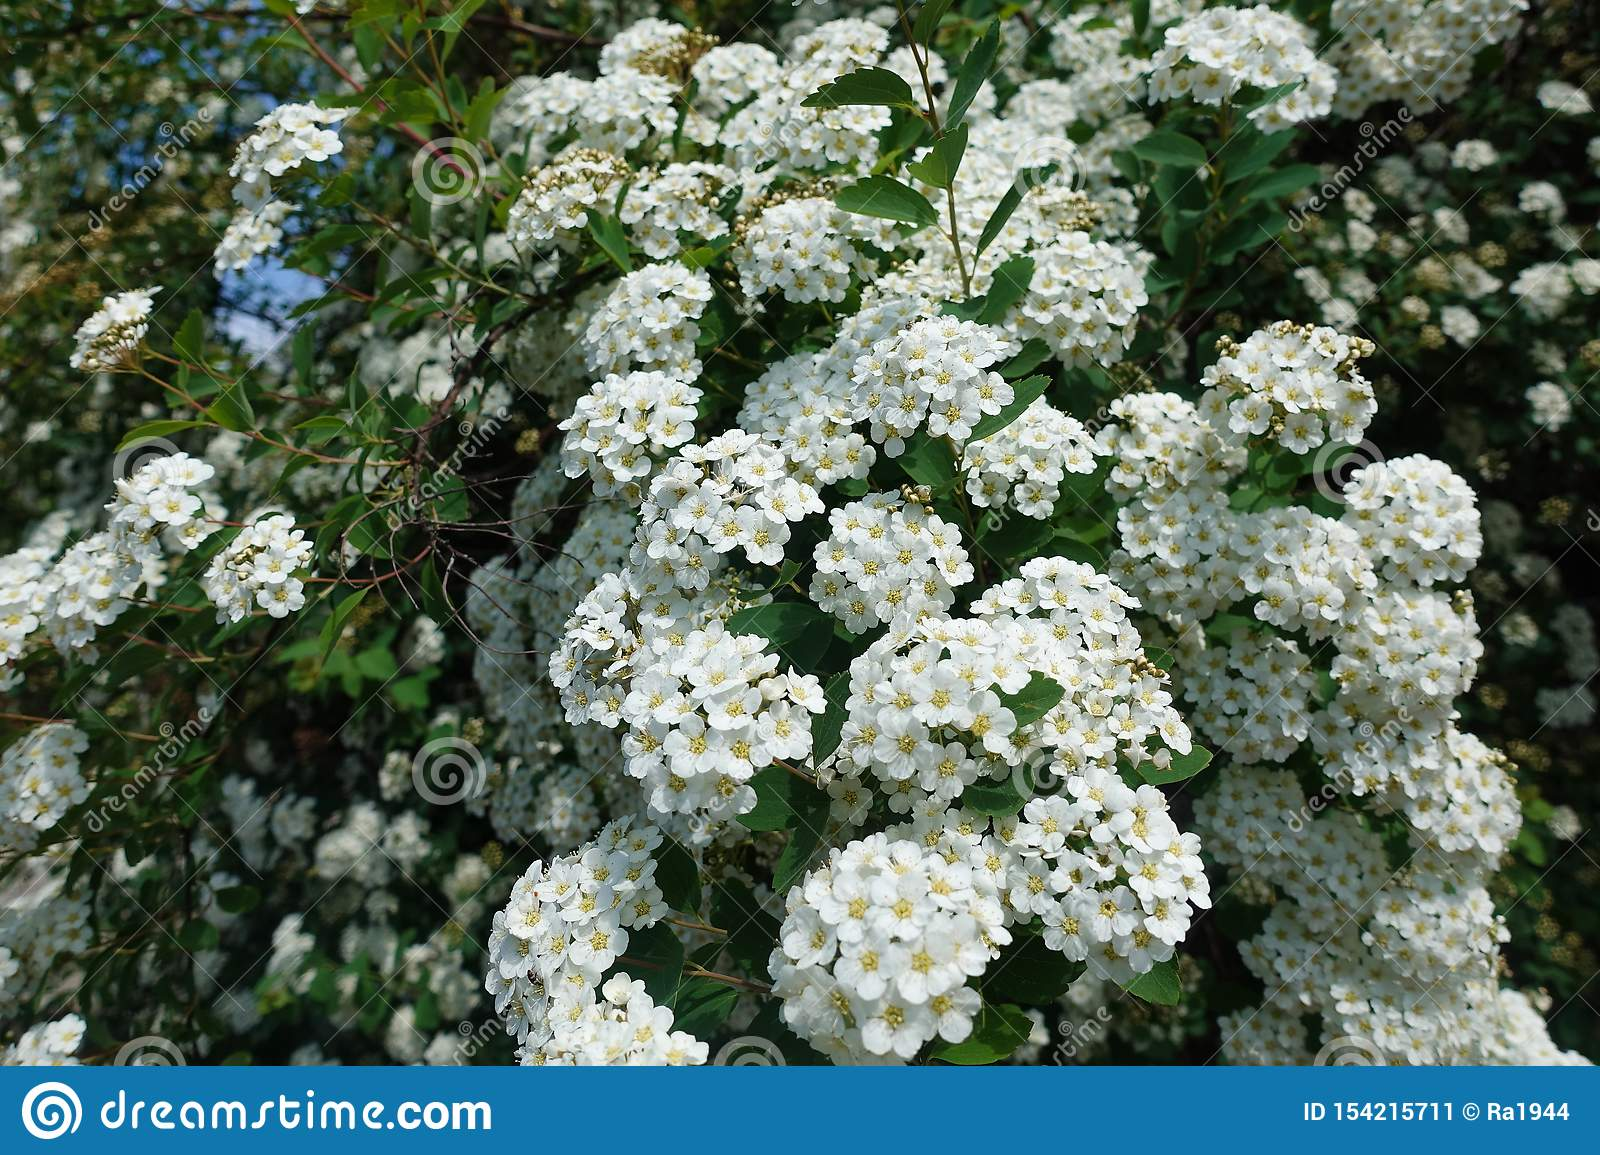 Background of little white flowers. Bush of small white flowers